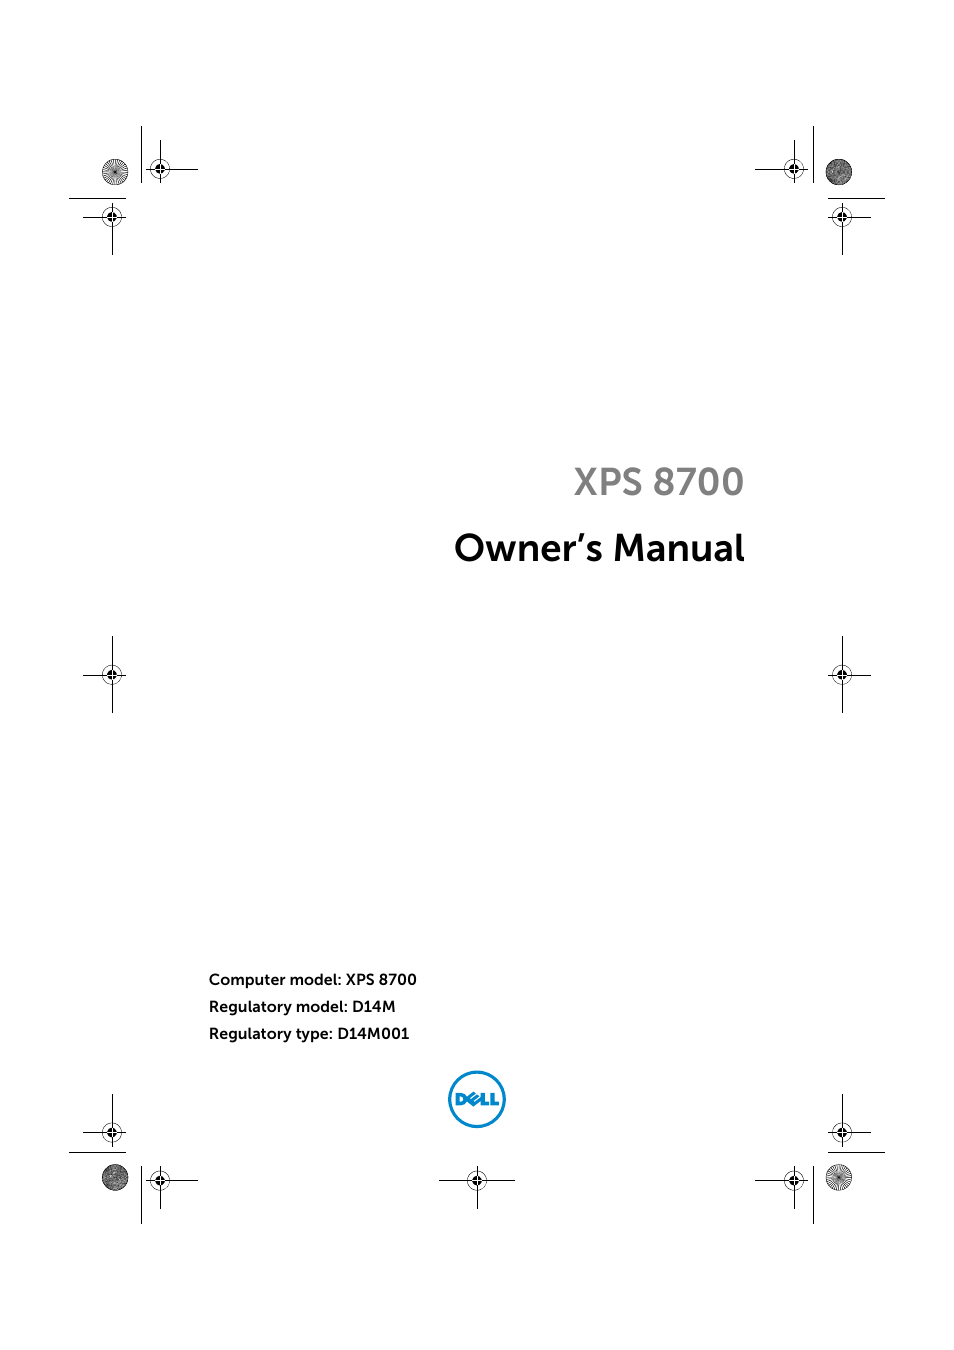 latest bios for dell xps 8700